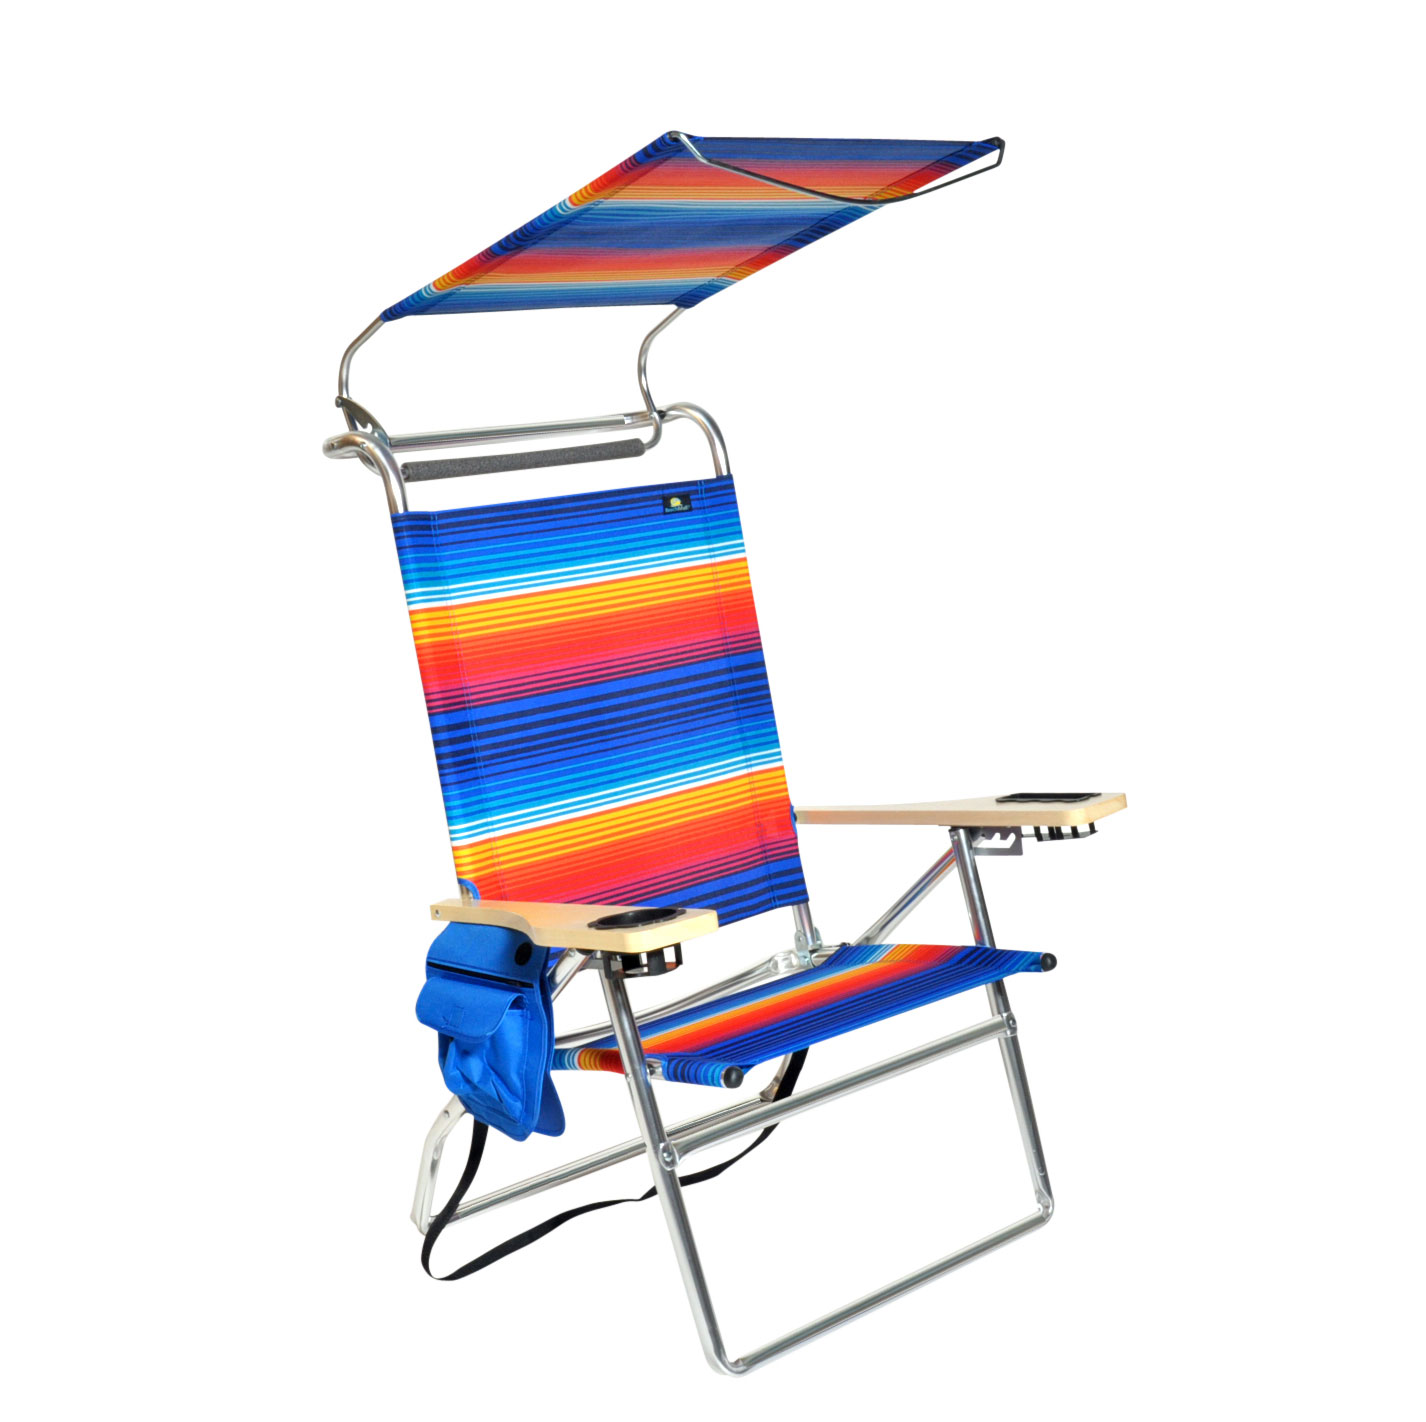 beach chairs with shade chair cushions ties ireland deluxe 4 position aluminum w canopy and storage